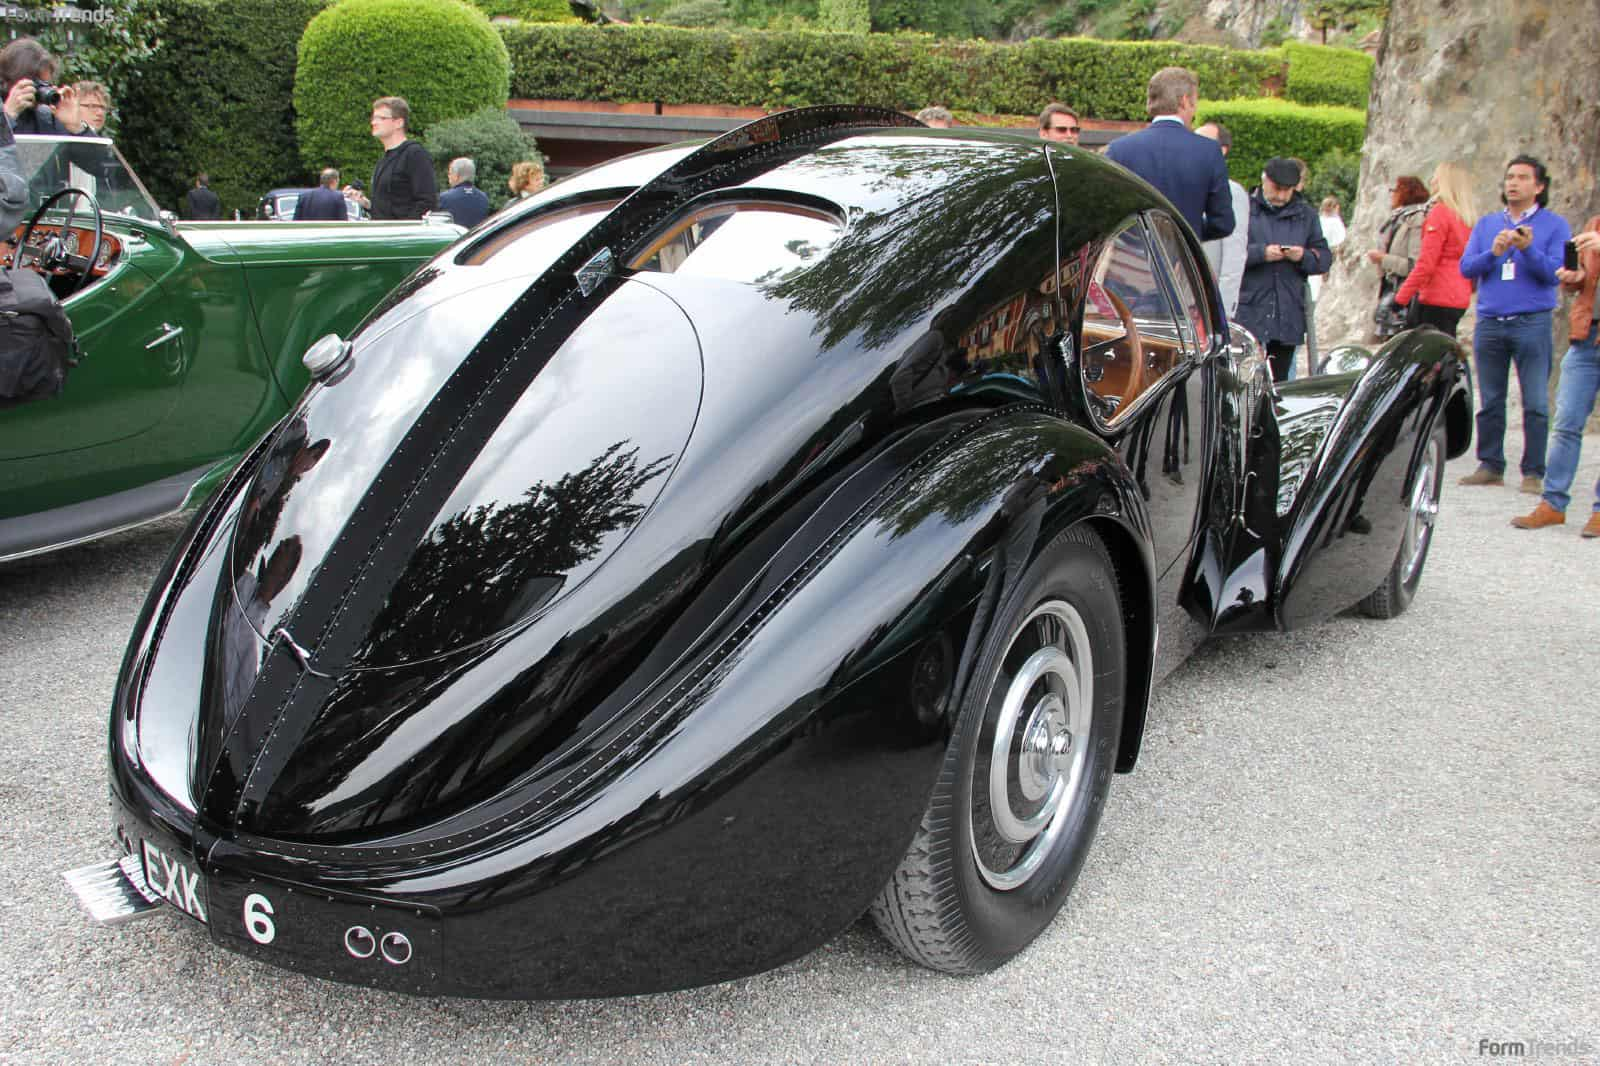 Ralph Lauren's Bugatti 57SC Wins at 2013 Concorso d'Eleganza Villa on bugatti z type, bugatti prototypes, bugatti finale, bugatti type 57, bugatti eb110, bugatti type 55, mercedes-benz ssk, lamborghini lm002, porsche 911 gt3, mercedes-benz 300sl, bugatti type 101, bugatti speed, bugatti tires, bugatti royale, bugatti type 35, bugatti hennessey, bugatti type 46, cadillac v-16, bugatti fire, bugatti 4 door, bugatti tumblr, bugatti type 252, bugatti atlantic, bugatti sport, bugatti accident, bugatti type 10, bugatti eb118, bugatti hd, bugatti type 18, bugatti 16c galibier concept, ettore bugatti, bugatti veyron, bugatti type 53,